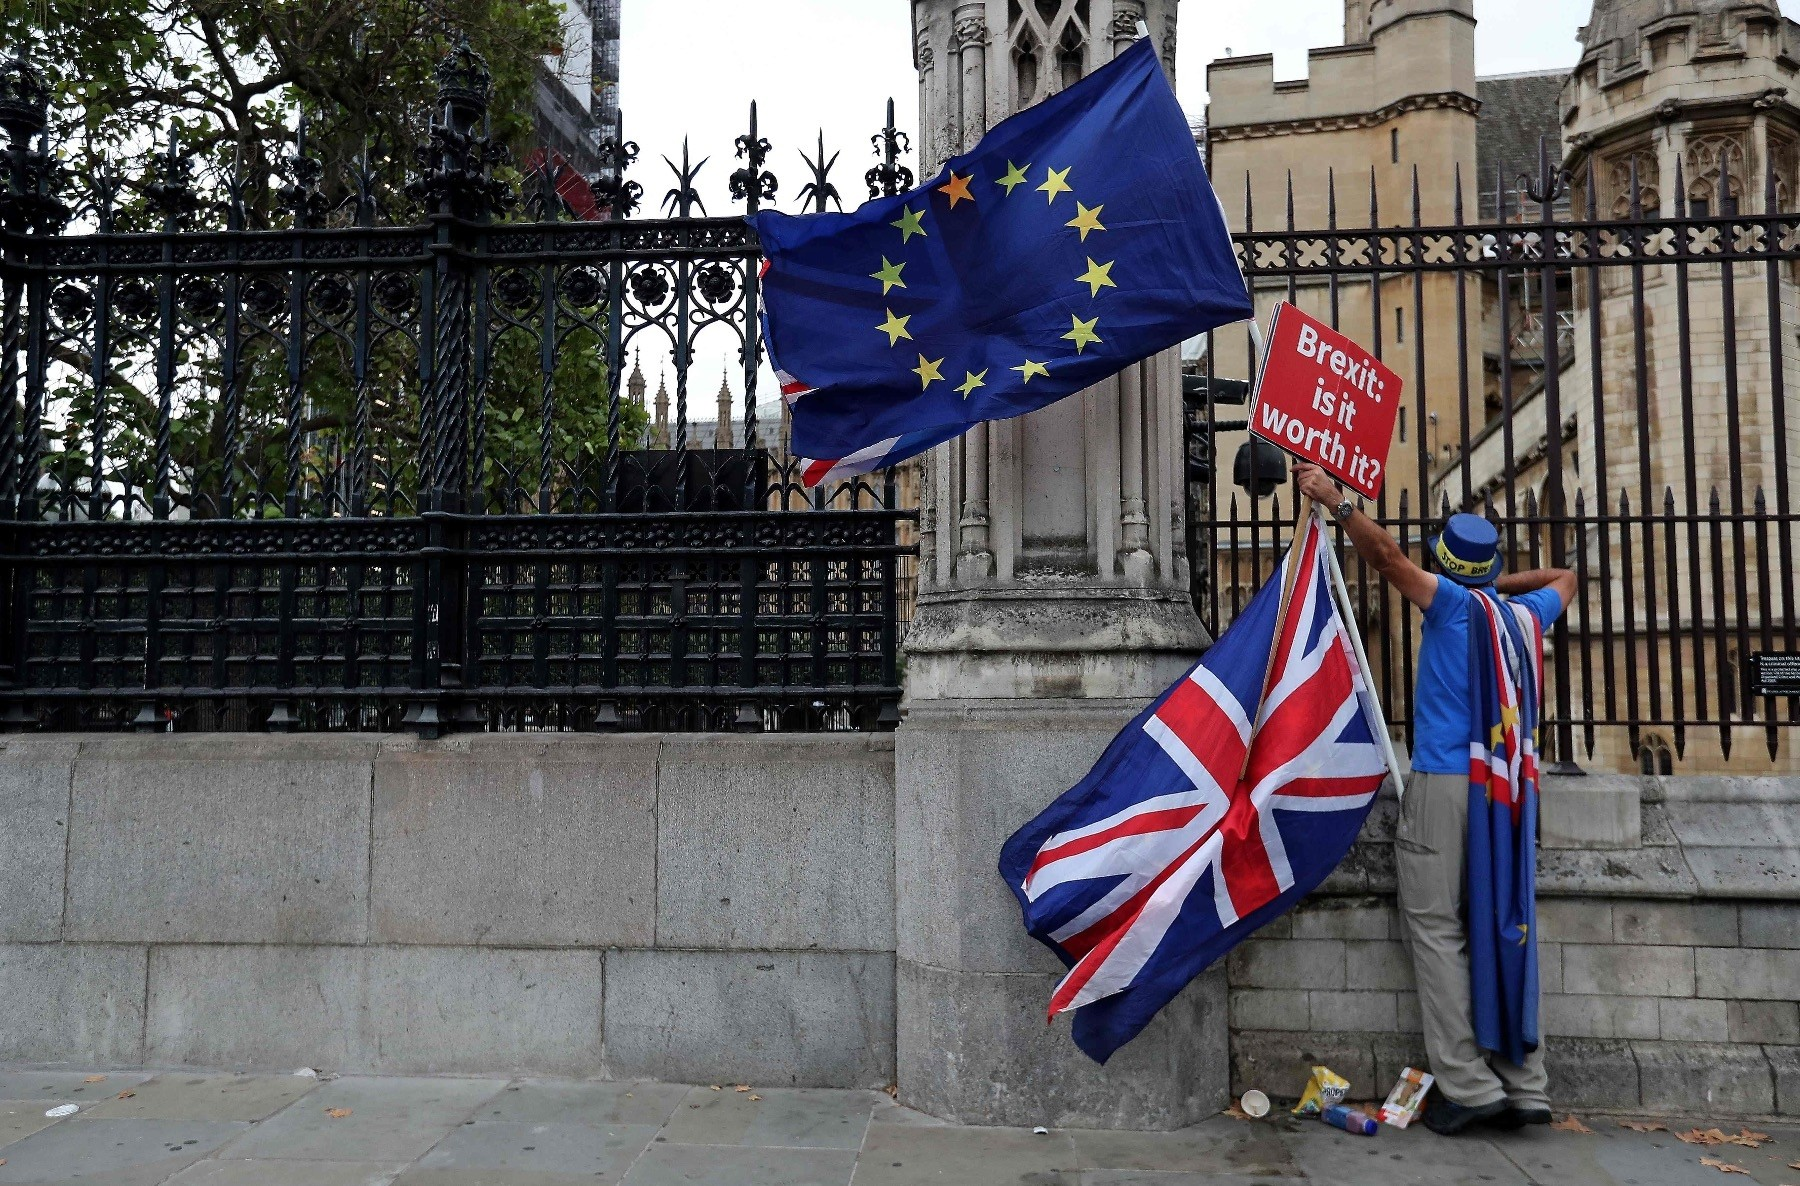 A demonstrator holds a sign that reads ,Brexit: Is it worth it?, while waving an EU flag, as he protests outside the Houses of Parliament in central London, Sept. 11, 2018.